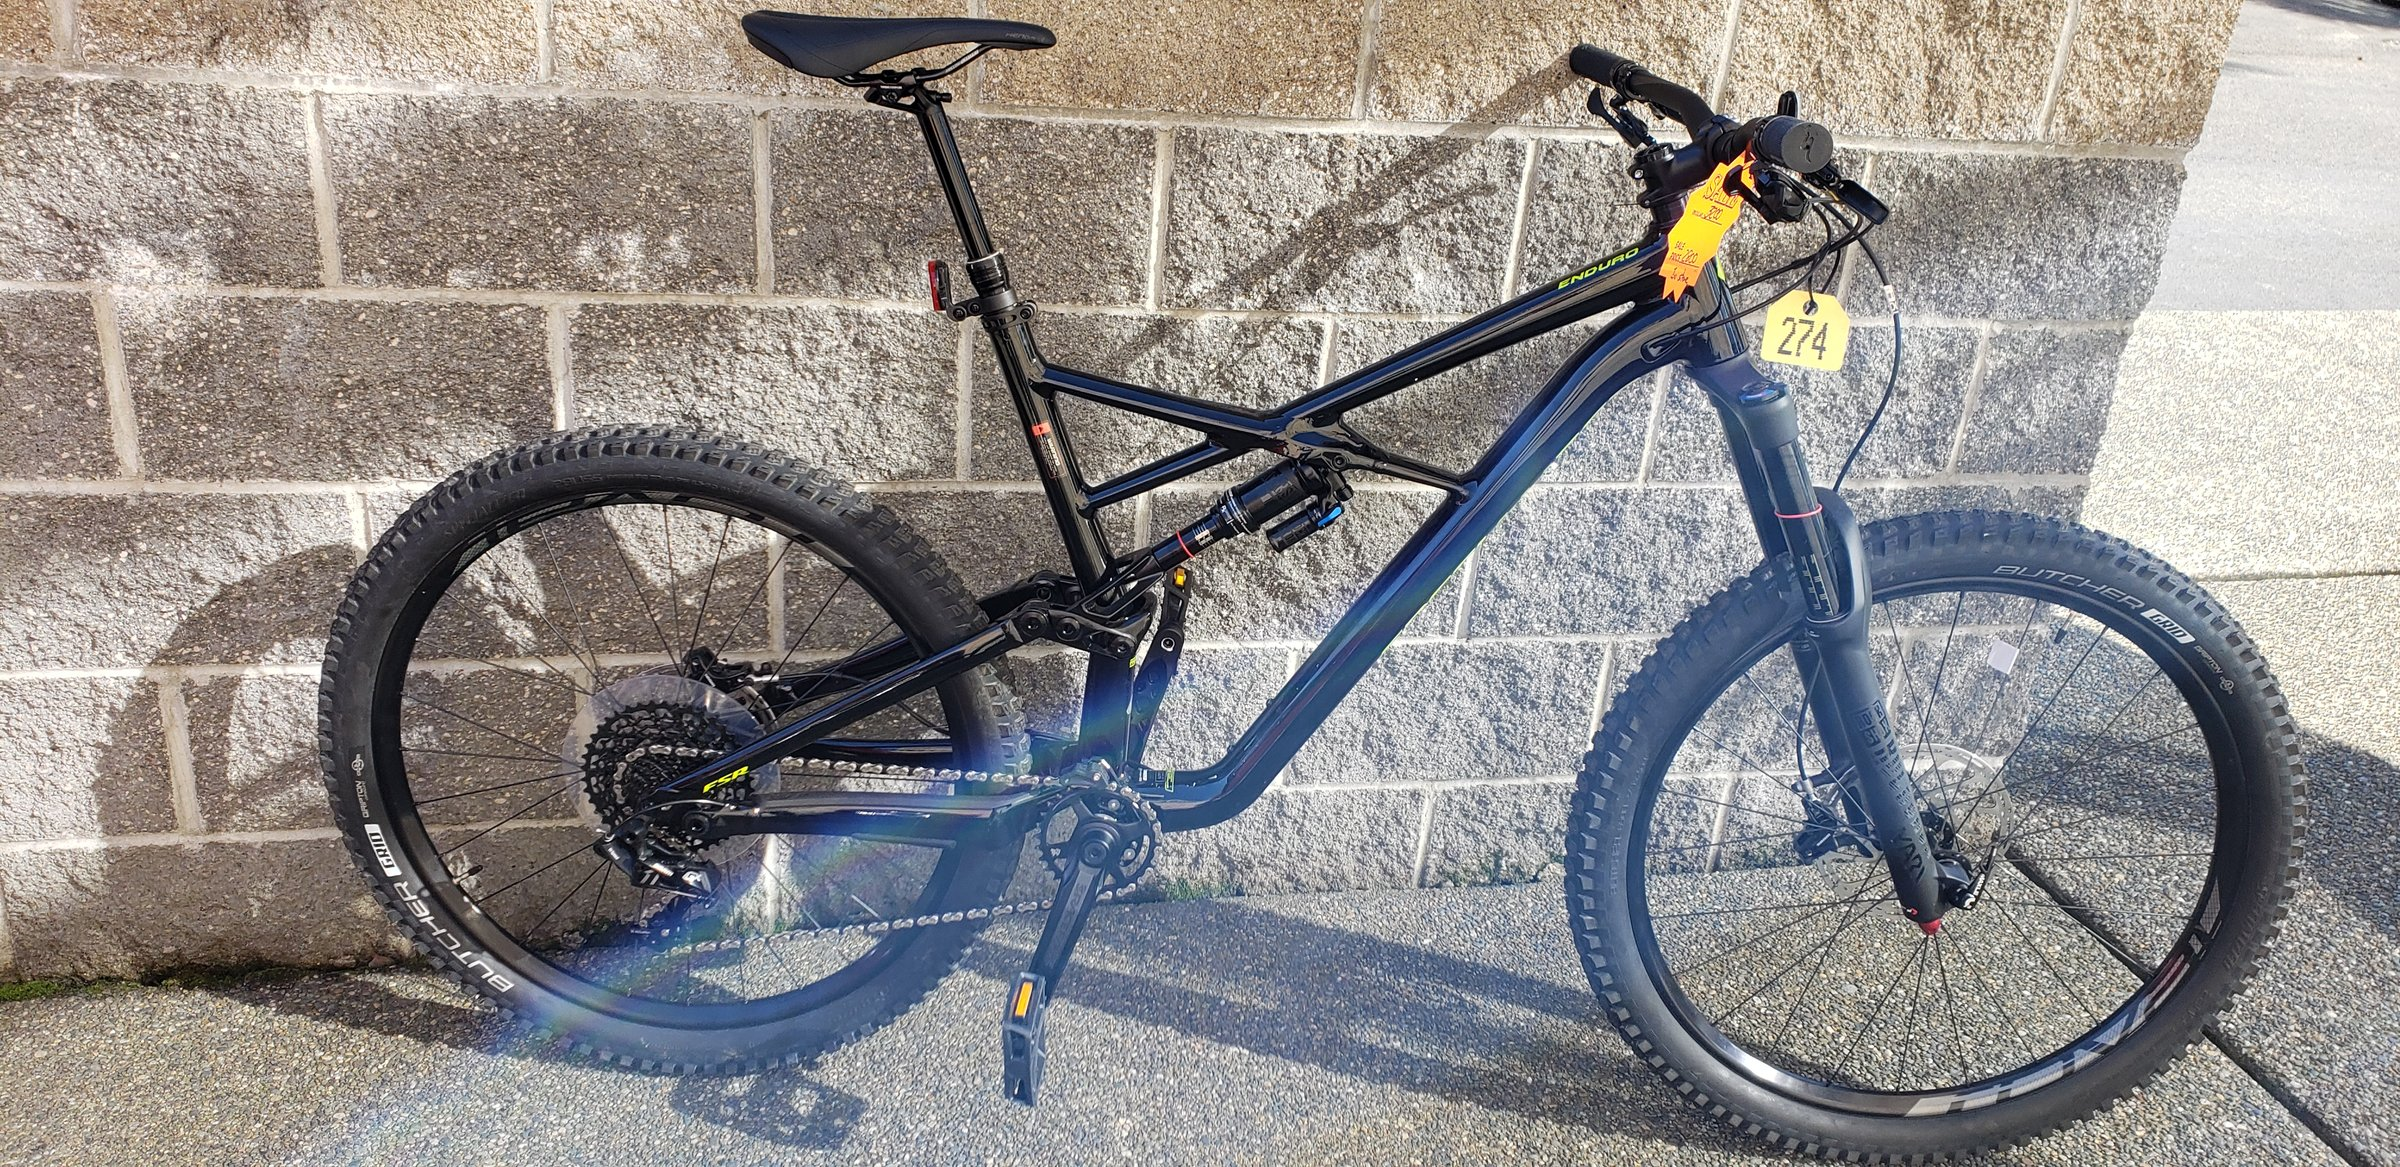 c11b60ac55d Specialized Enduro Comp 27.5 - Center Cycle Bicycles - Renton ...